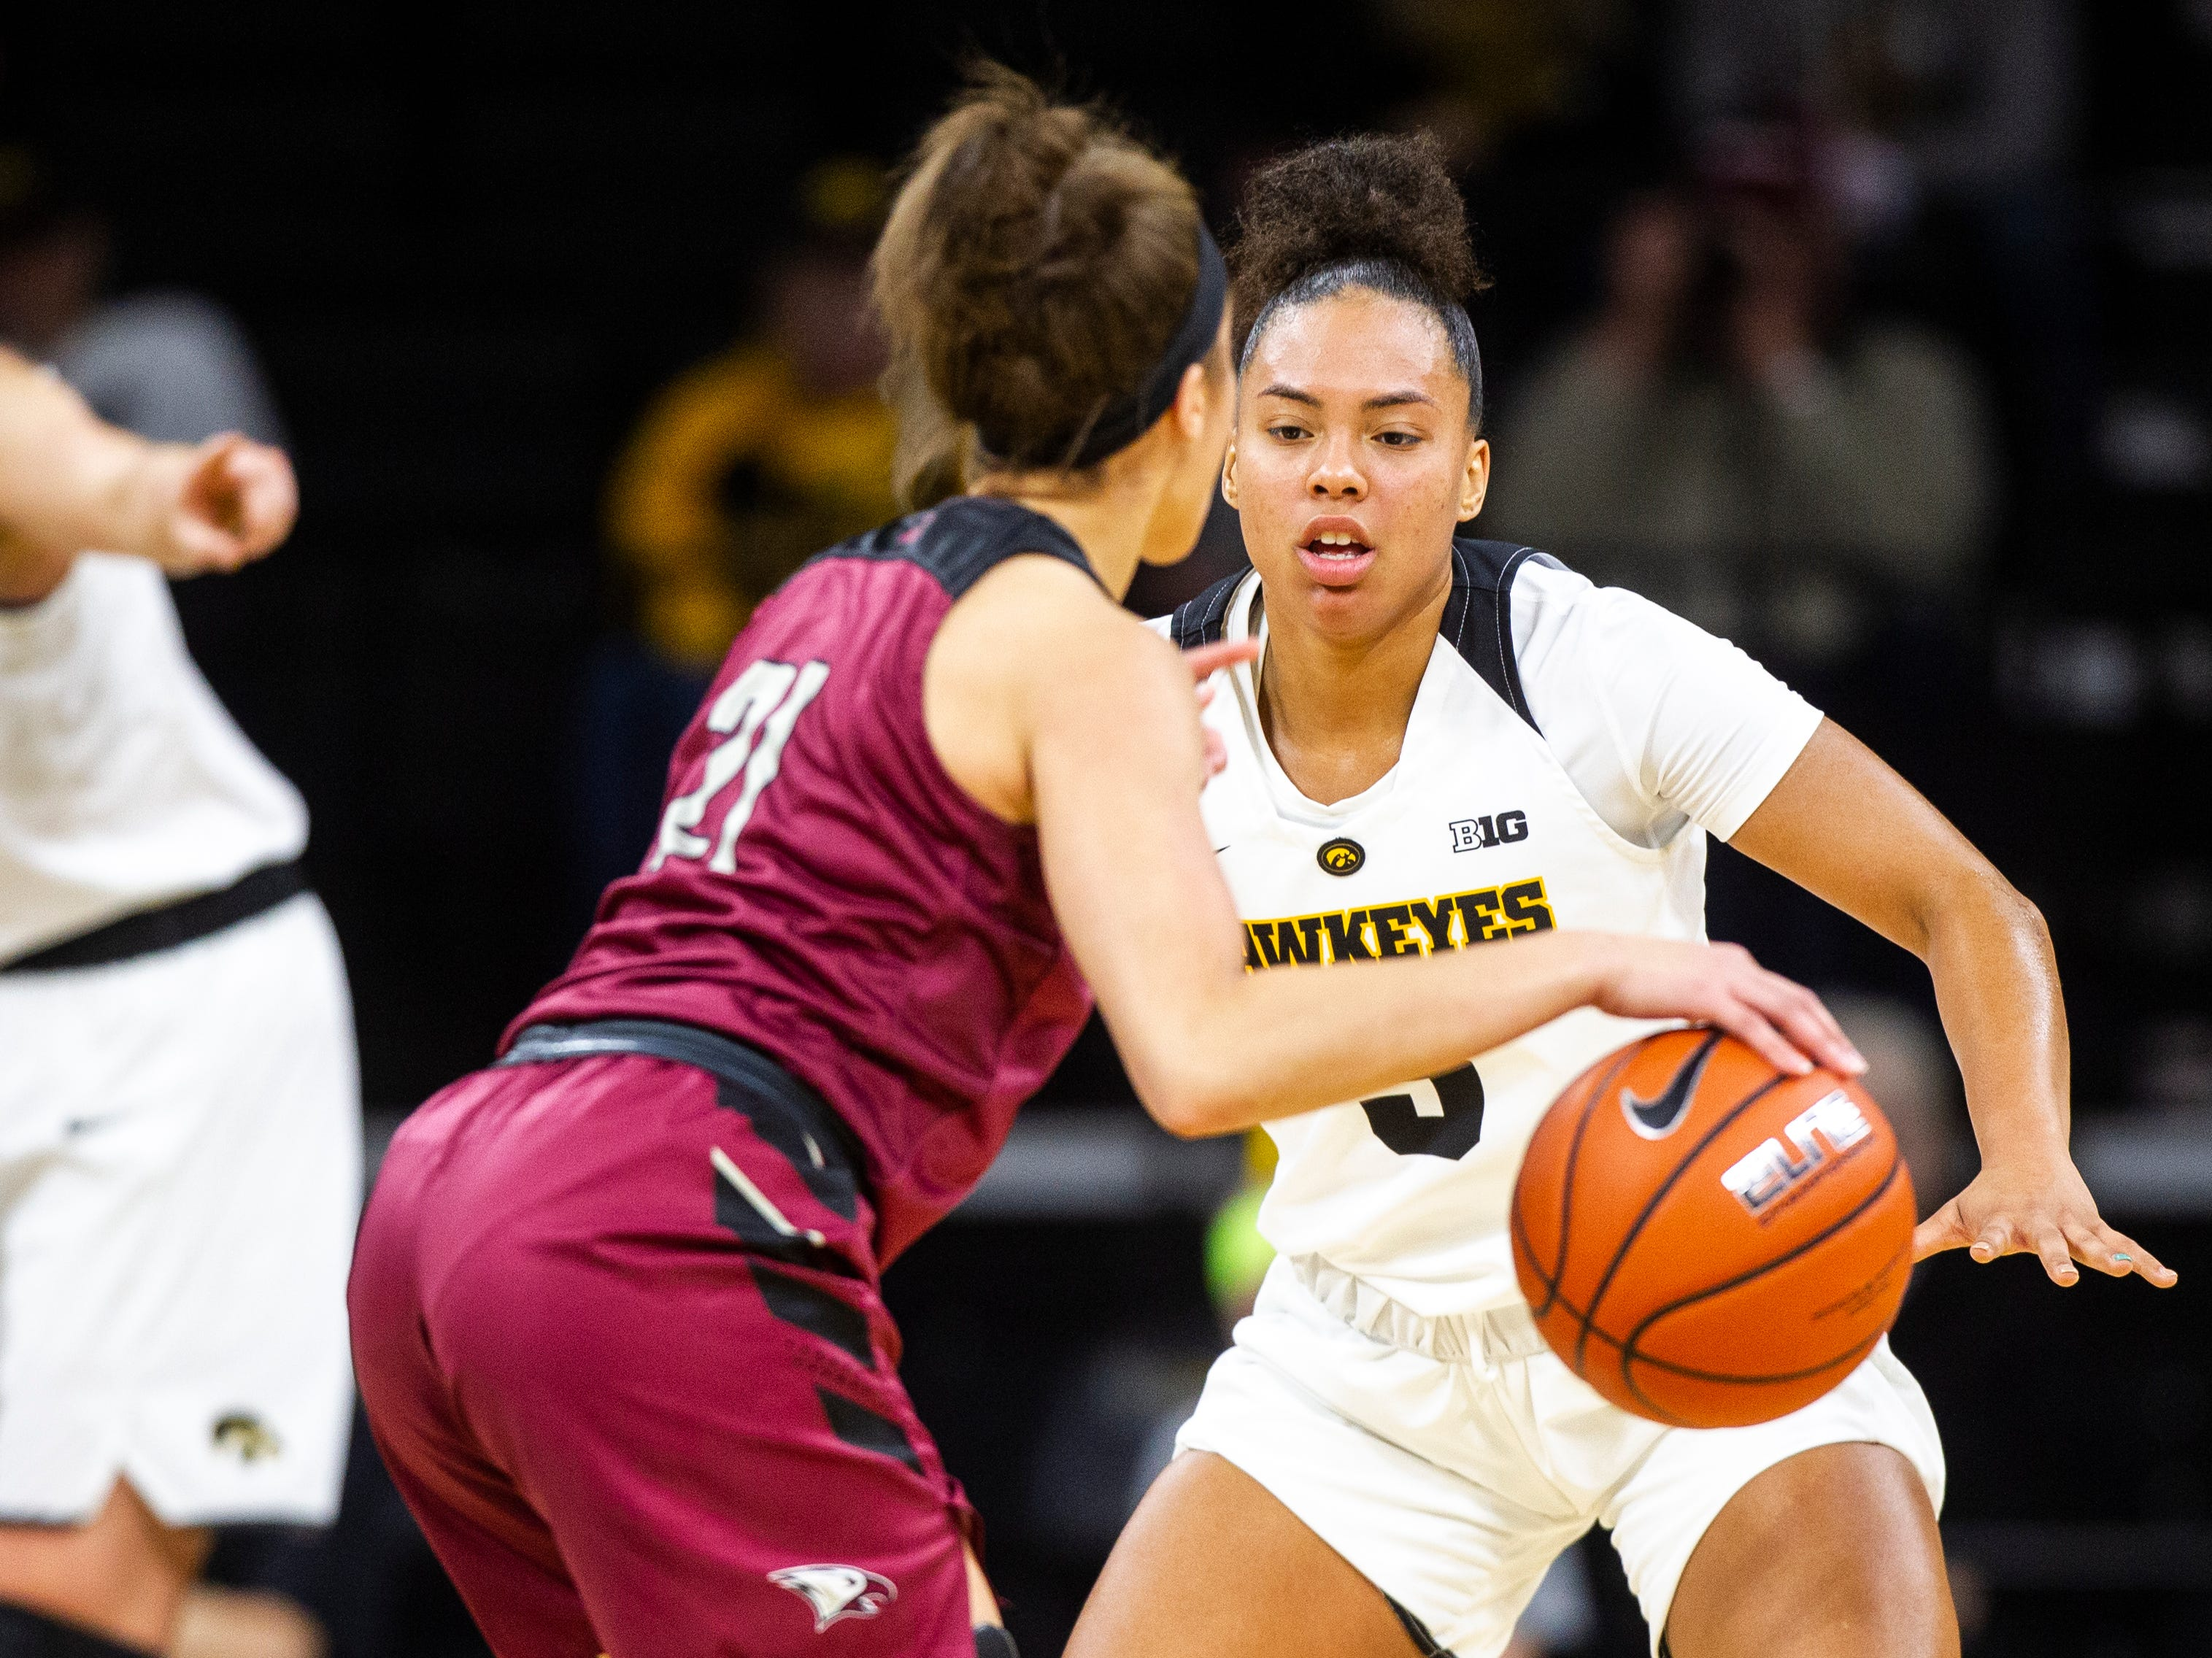 Iowa guard Alexis Sevillian (5) defends North Carolina Central's Jasmine Pollock (21) during an NCAA women's basketball game on Saturday, Nov. 17, 2018, at Carver-Hawkeye Arena in Iowa City.